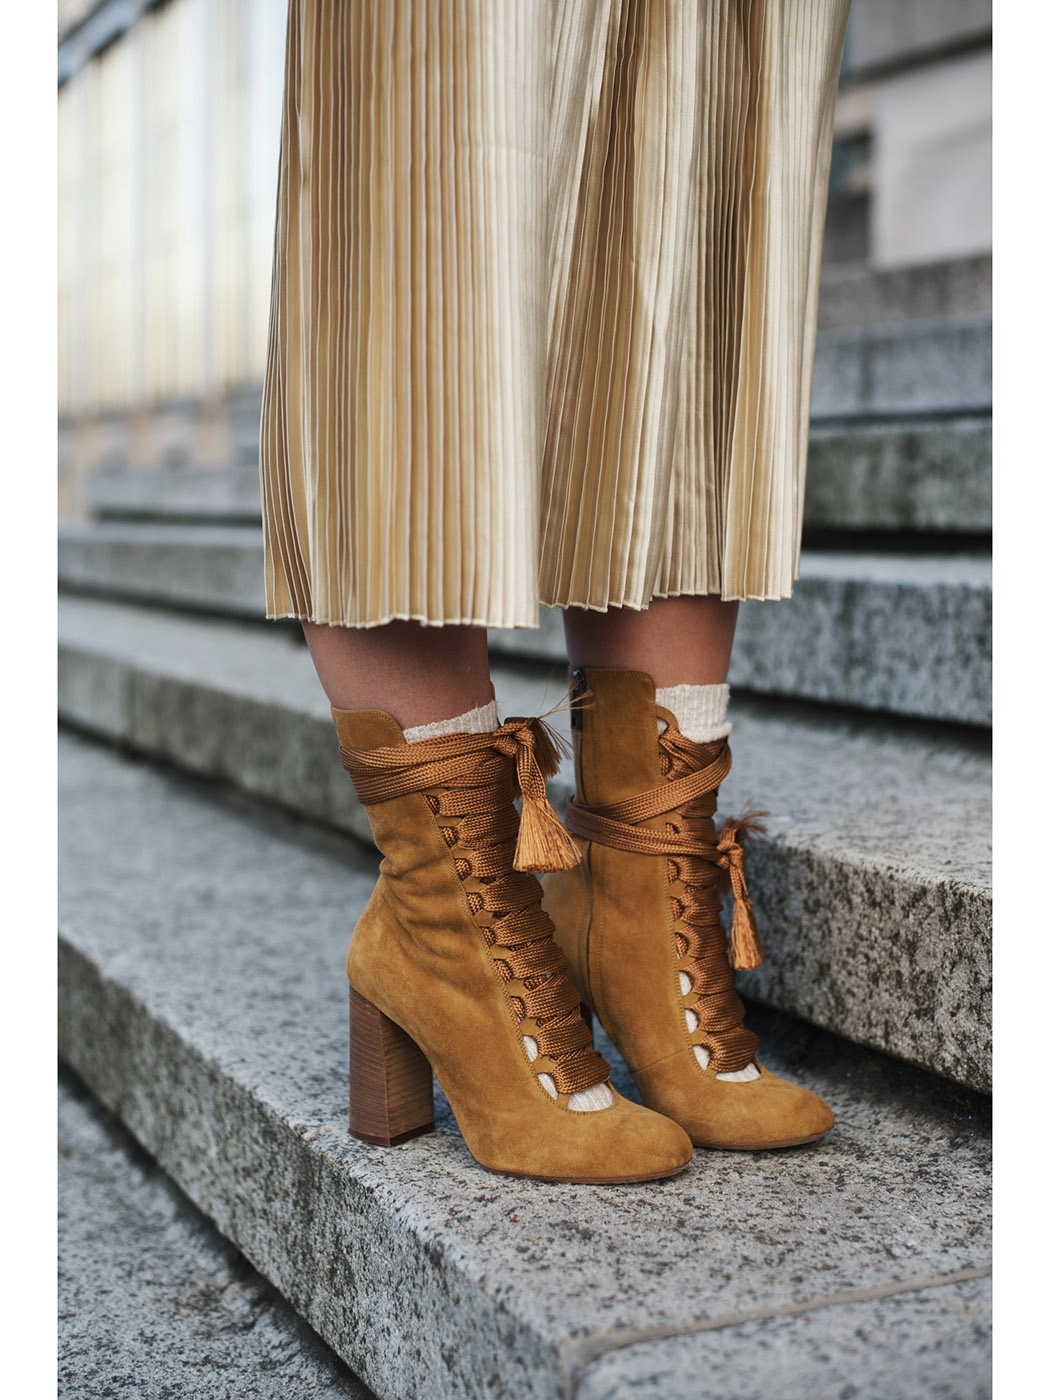 36d6cf77bb ... HARPER Tan brown suede leather wooden heel boots Retail price €910 Size  39 ...